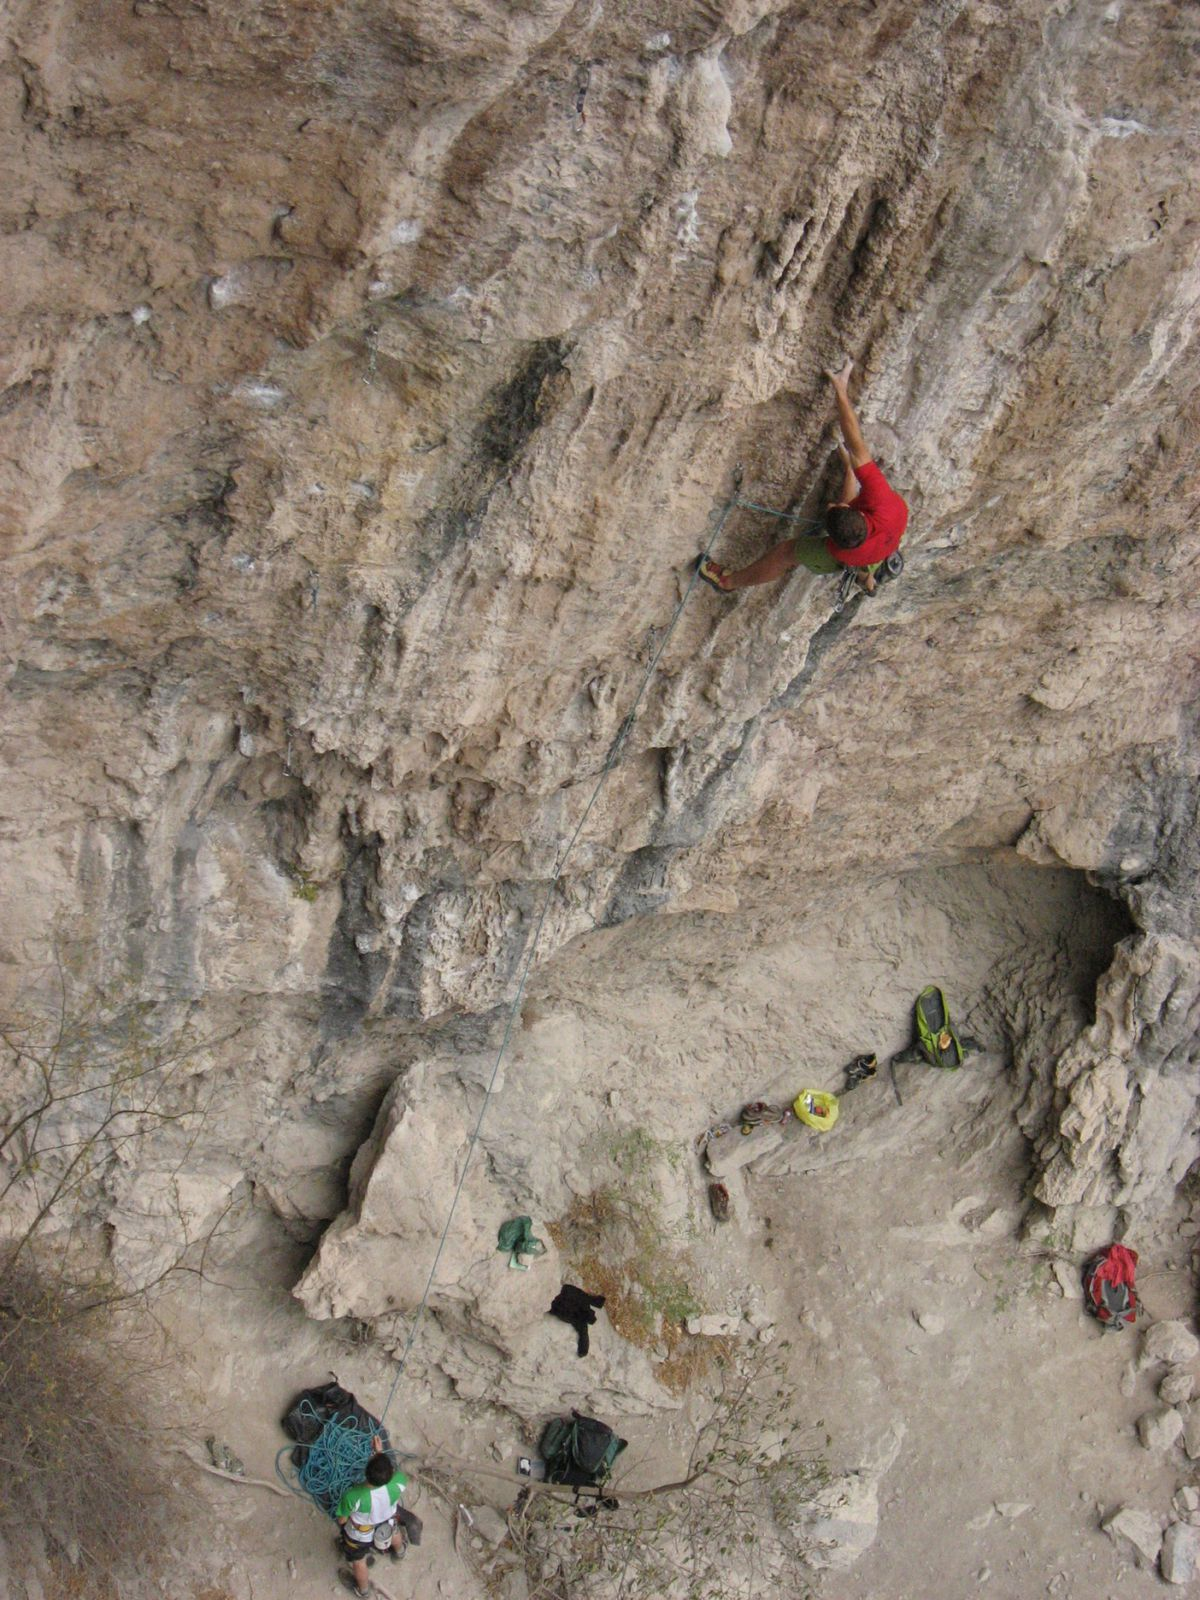 Big Blue, 5.13b in Surf Bowl and a slaby 12c nearby